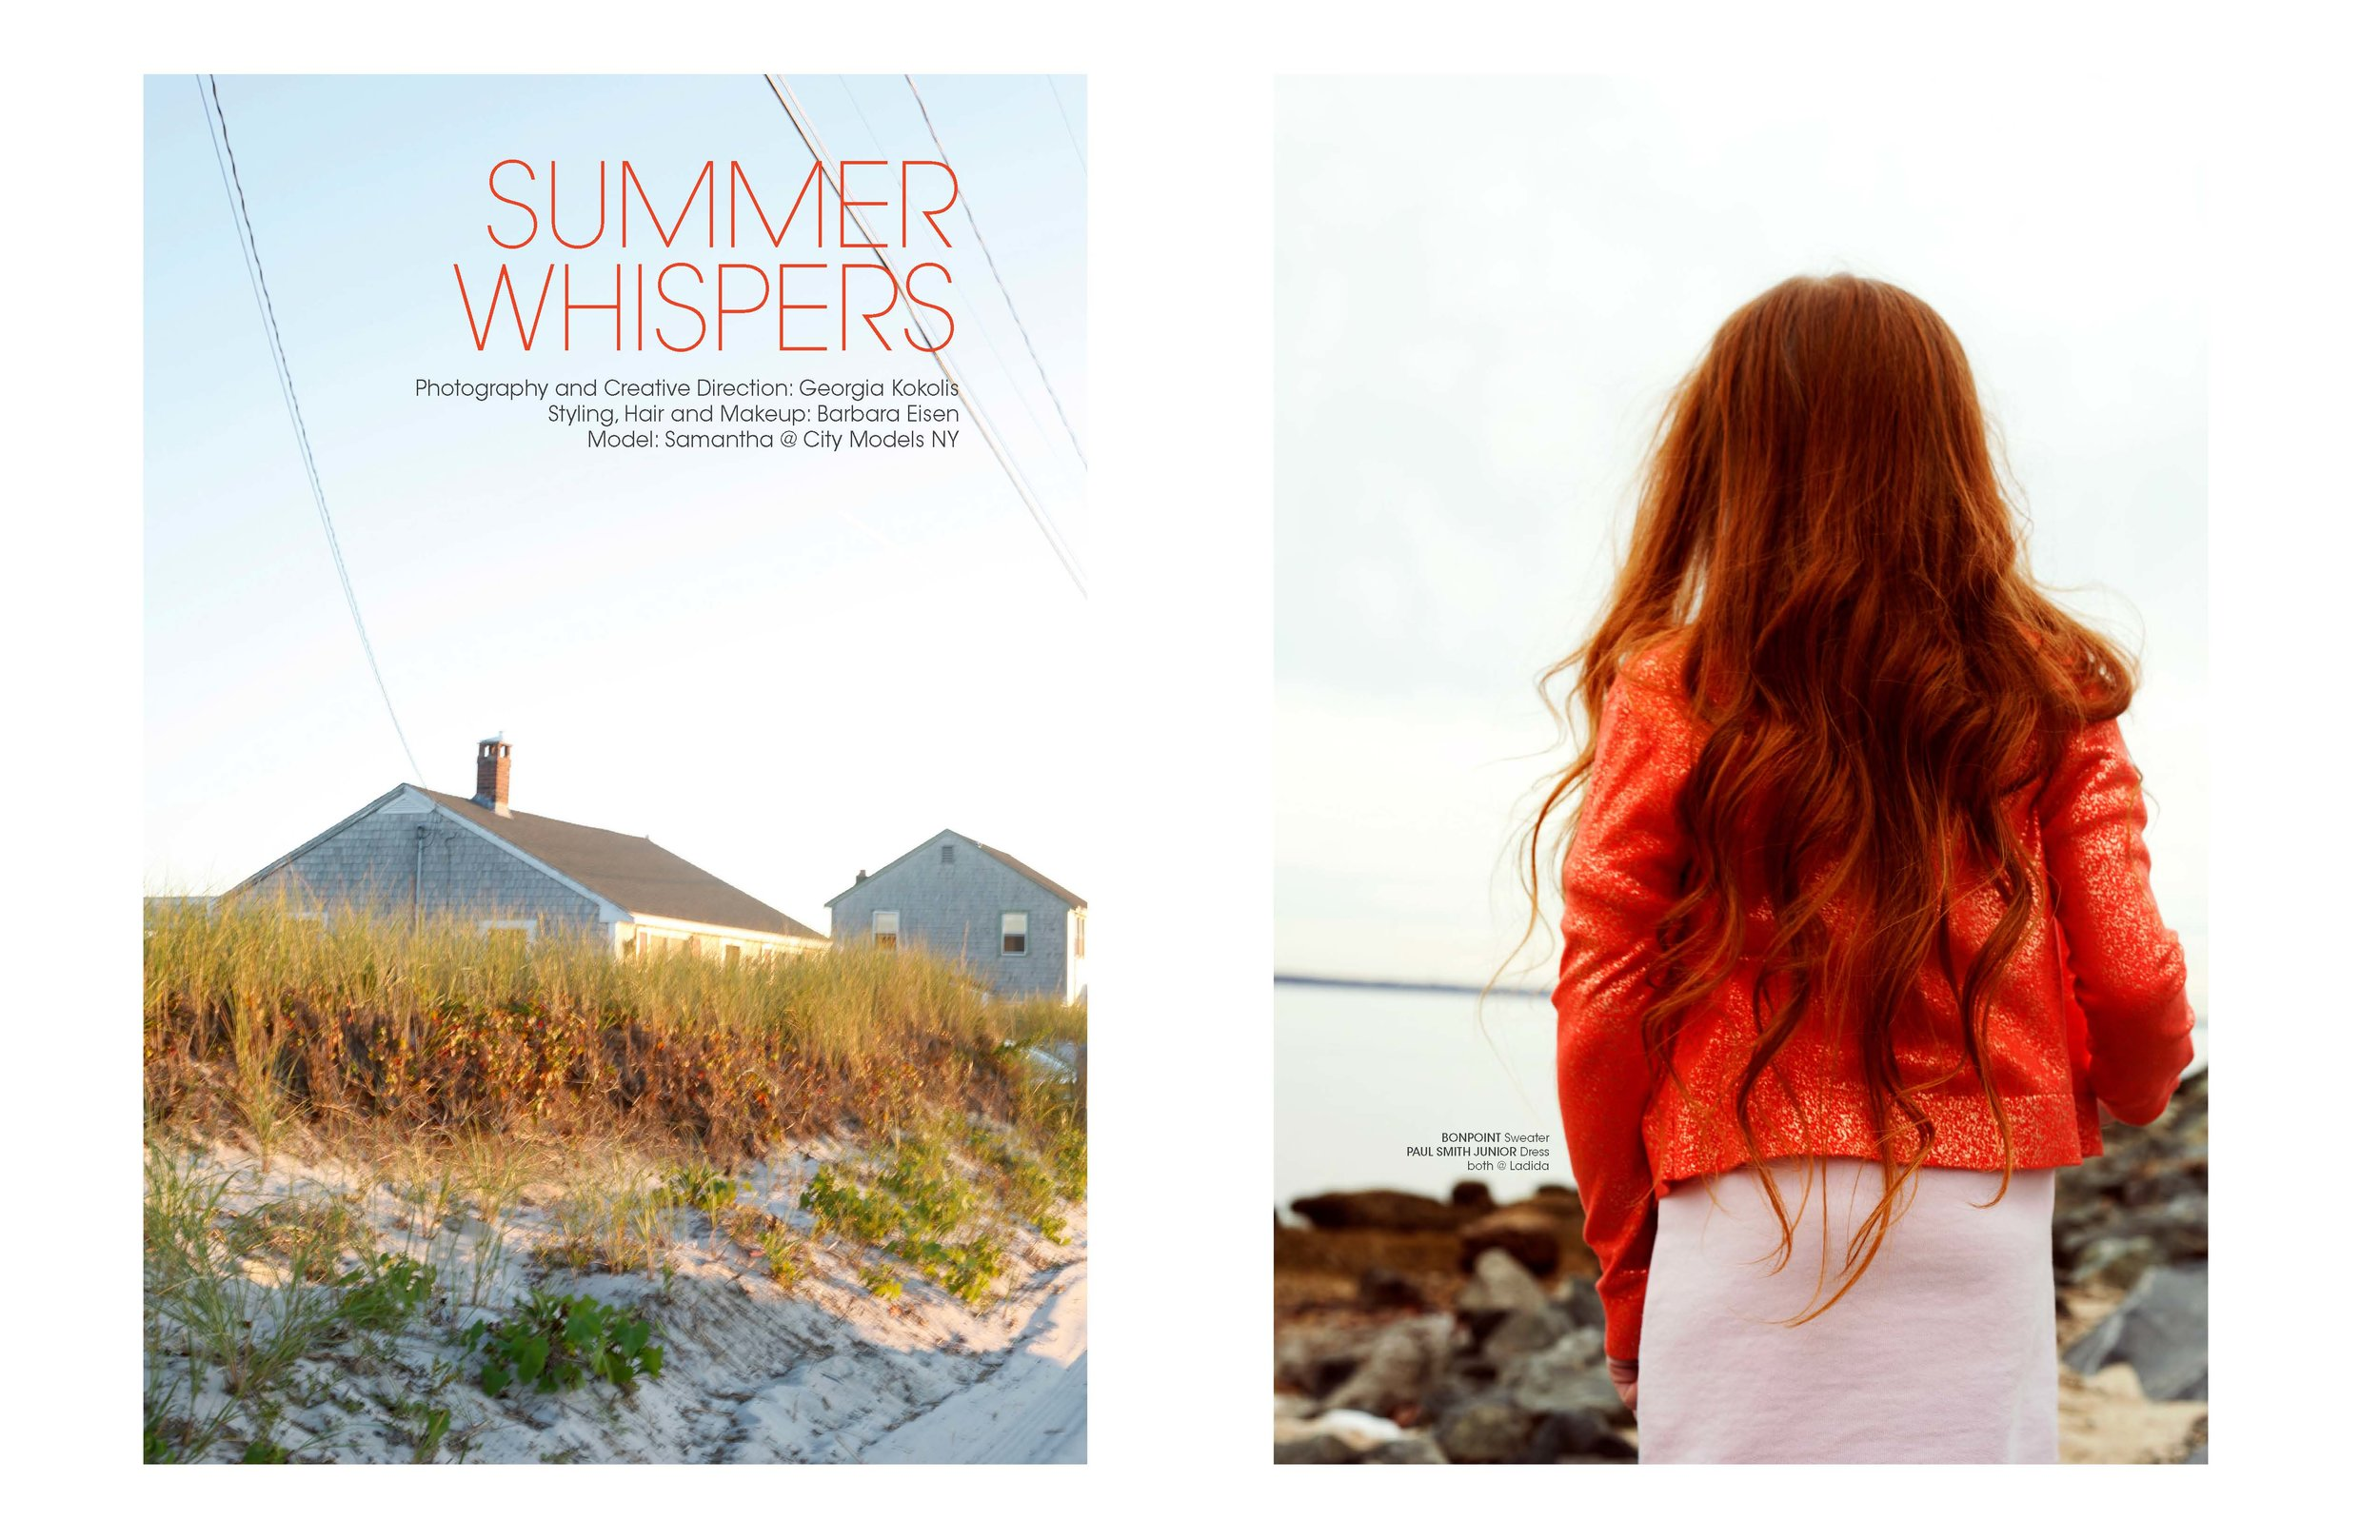 Summer Whispers August Hooligans_Page_1.jpg